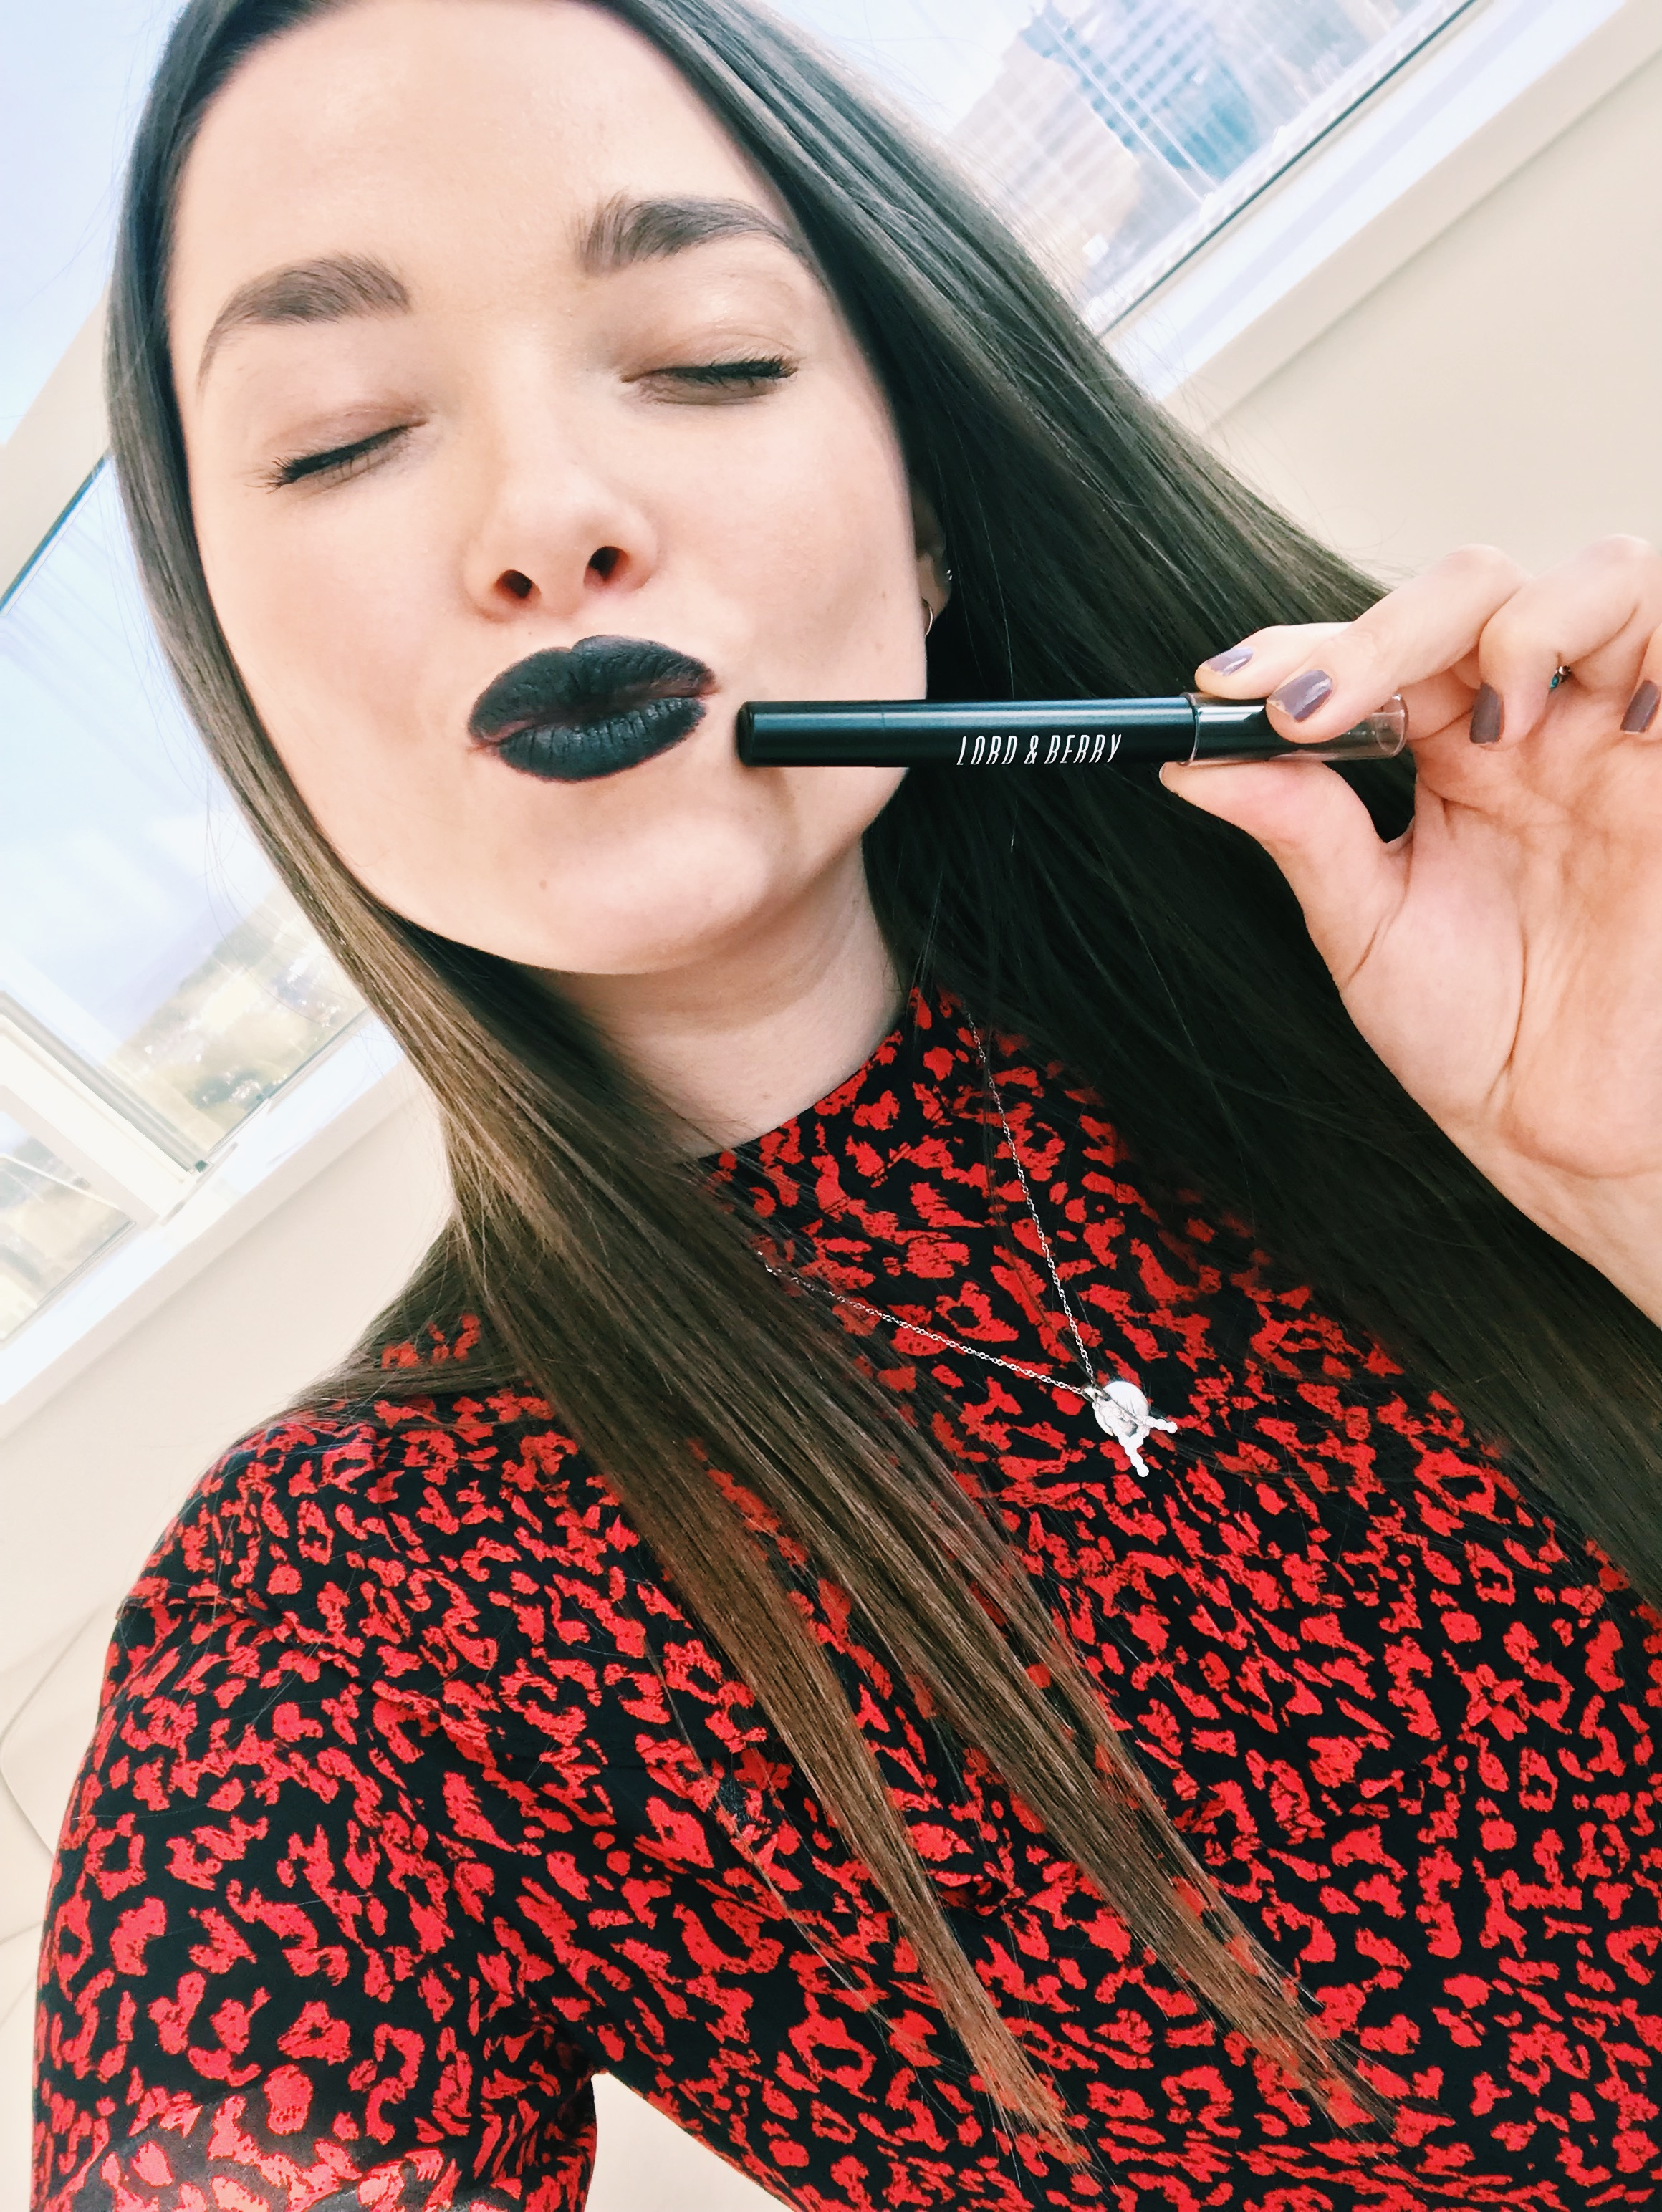 Lord and Berry Matte Lipstick Crayon Black Reviews | HQhair Blog